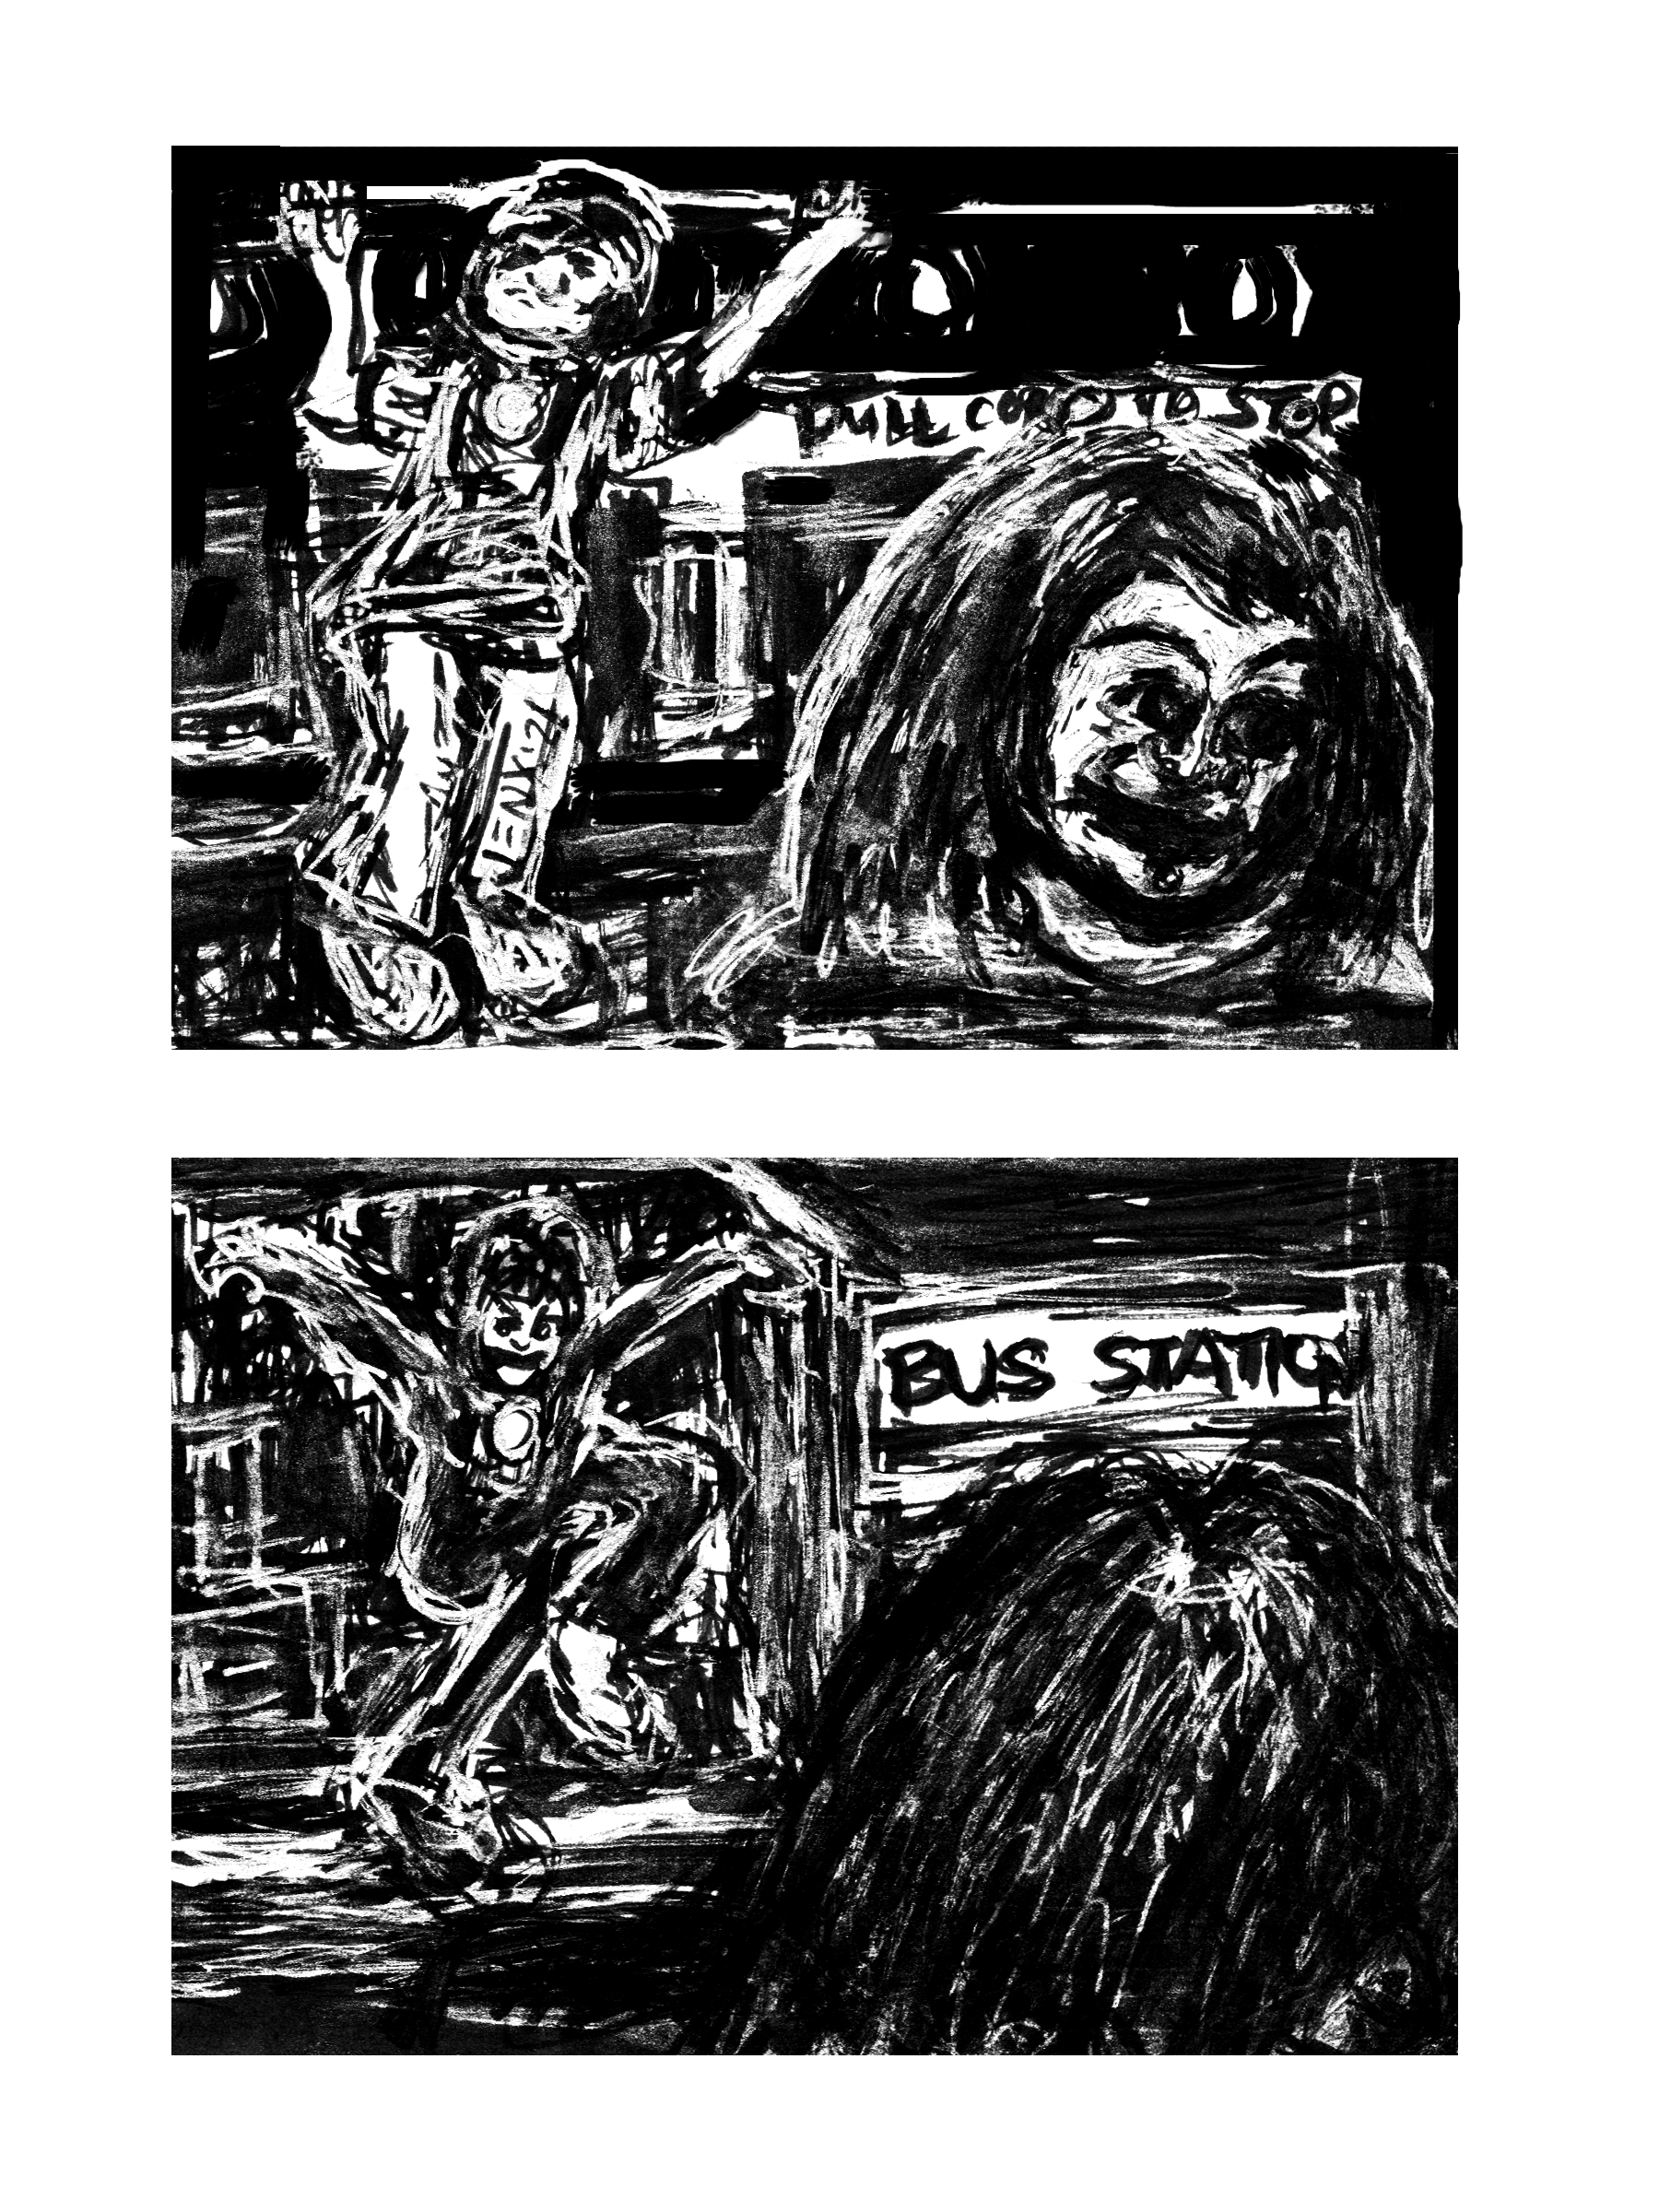 Image: two panel, black-and-white cartoon.  Panel 1: an Elvis impersonator does pull-ups on the bus as a gothic woman looks away. Panel 2: The Elvis impersonator dances at the bus station in the background, the gothic woman seen from behind in the foreground asleep.